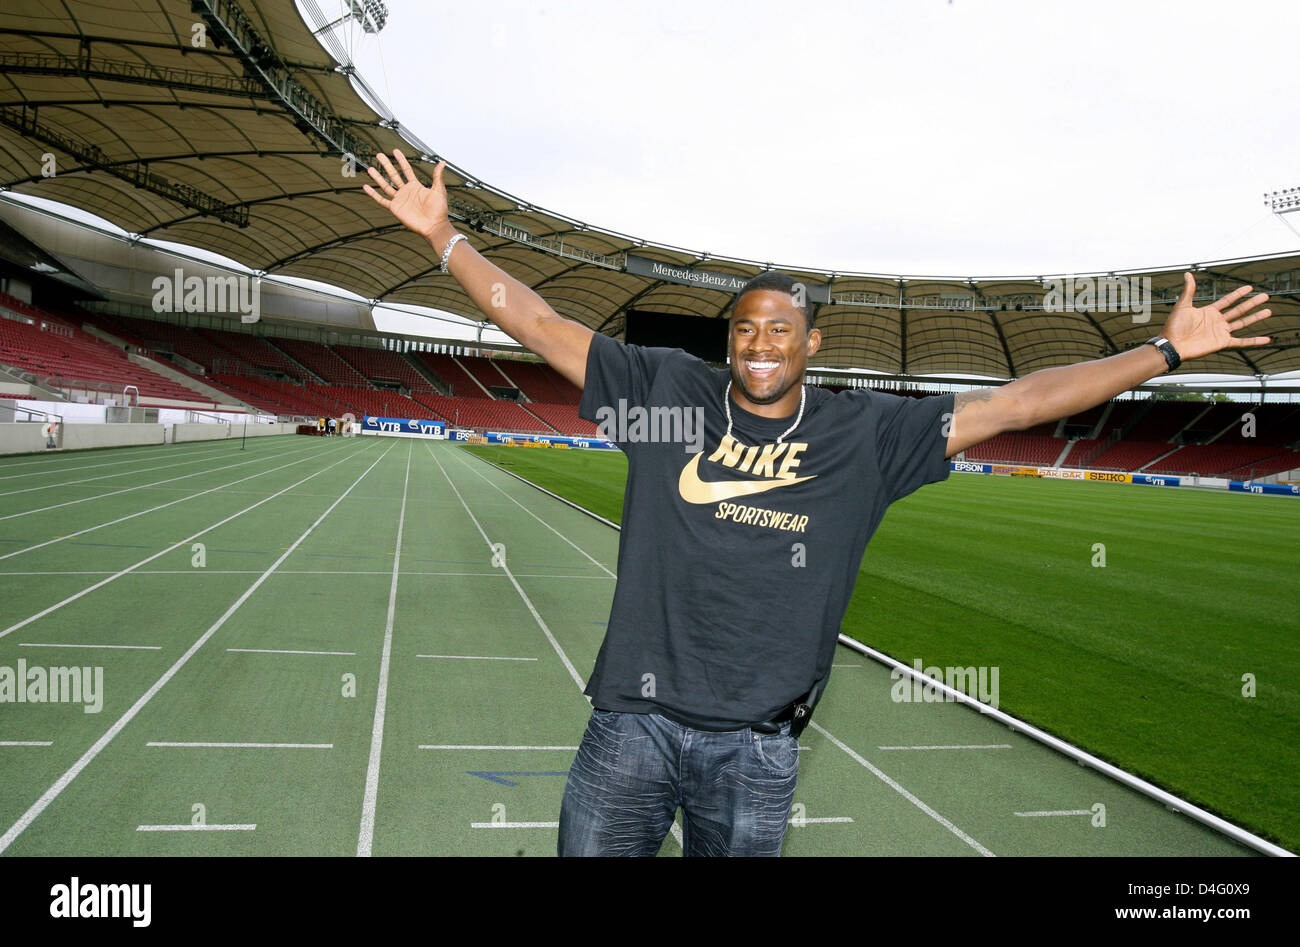 US hurdler David Oliver, who won the bronze medal at the 2008 Olympic Games in Beijing, China, poses for photographers - Stock Image